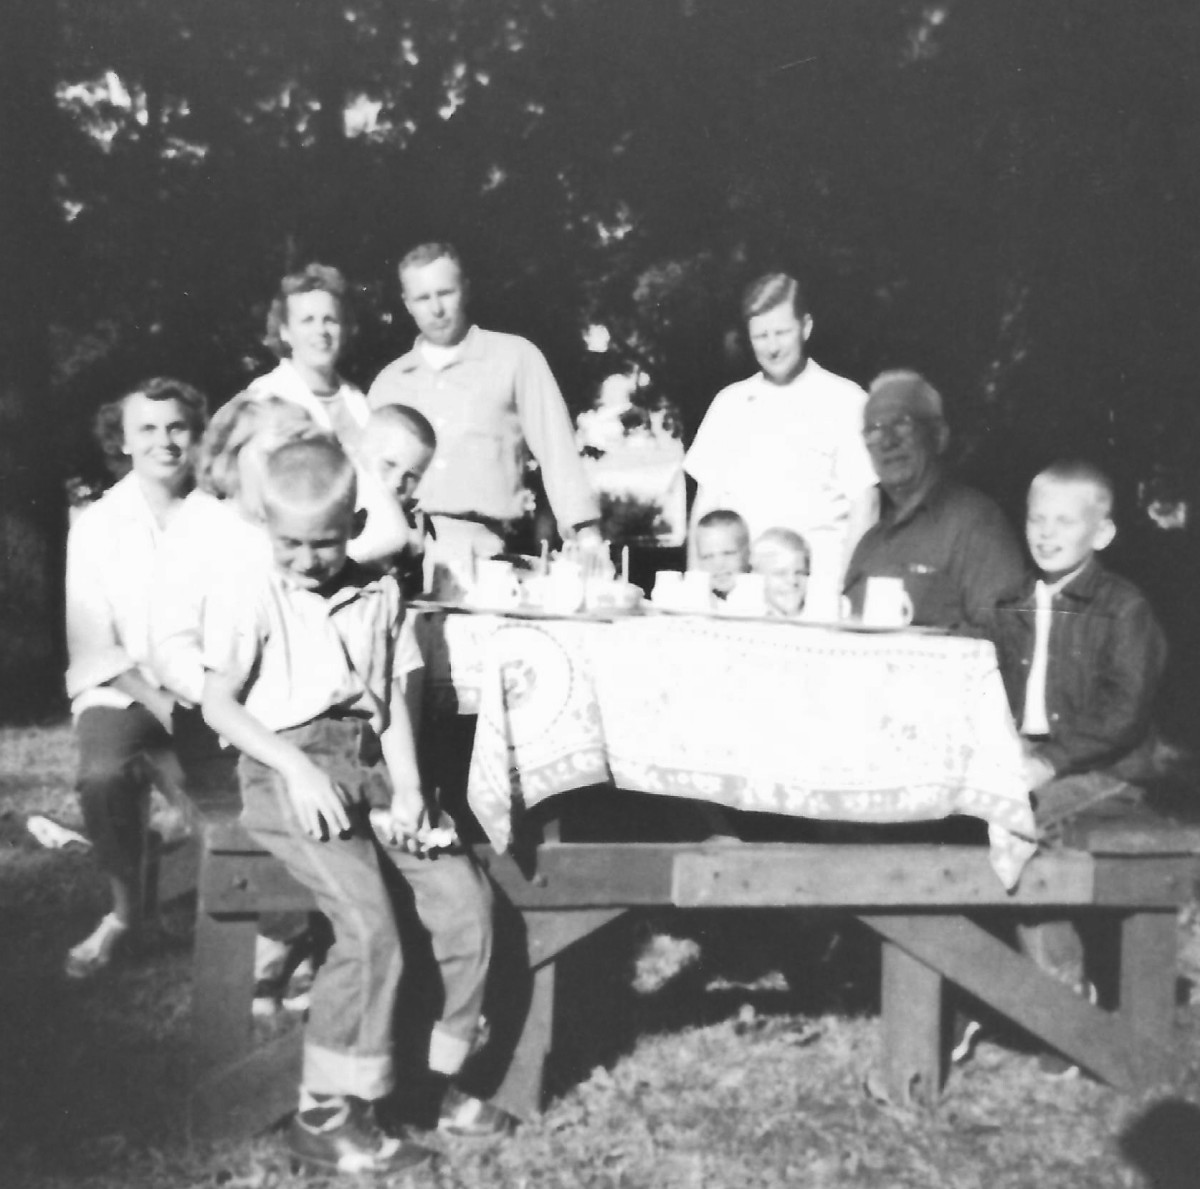 One of the many picnics we had as a family.  This one appears to also be a birthday celebration.